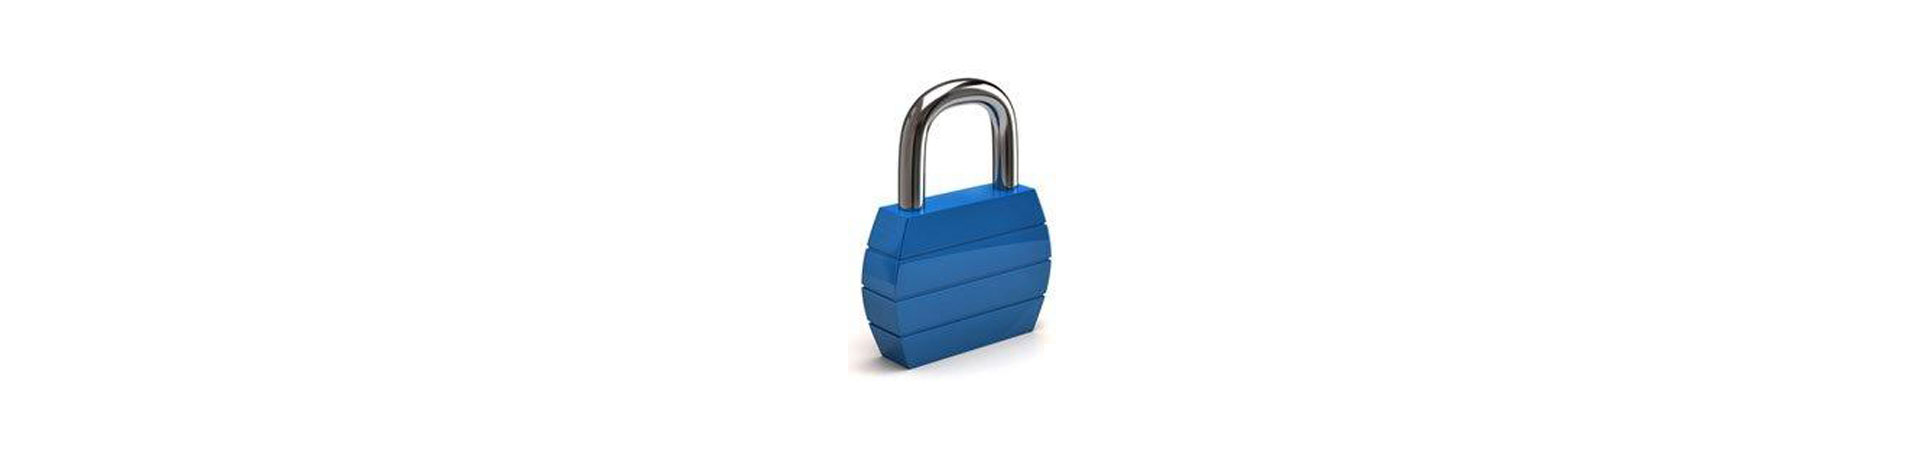 IT Security, padlock Image